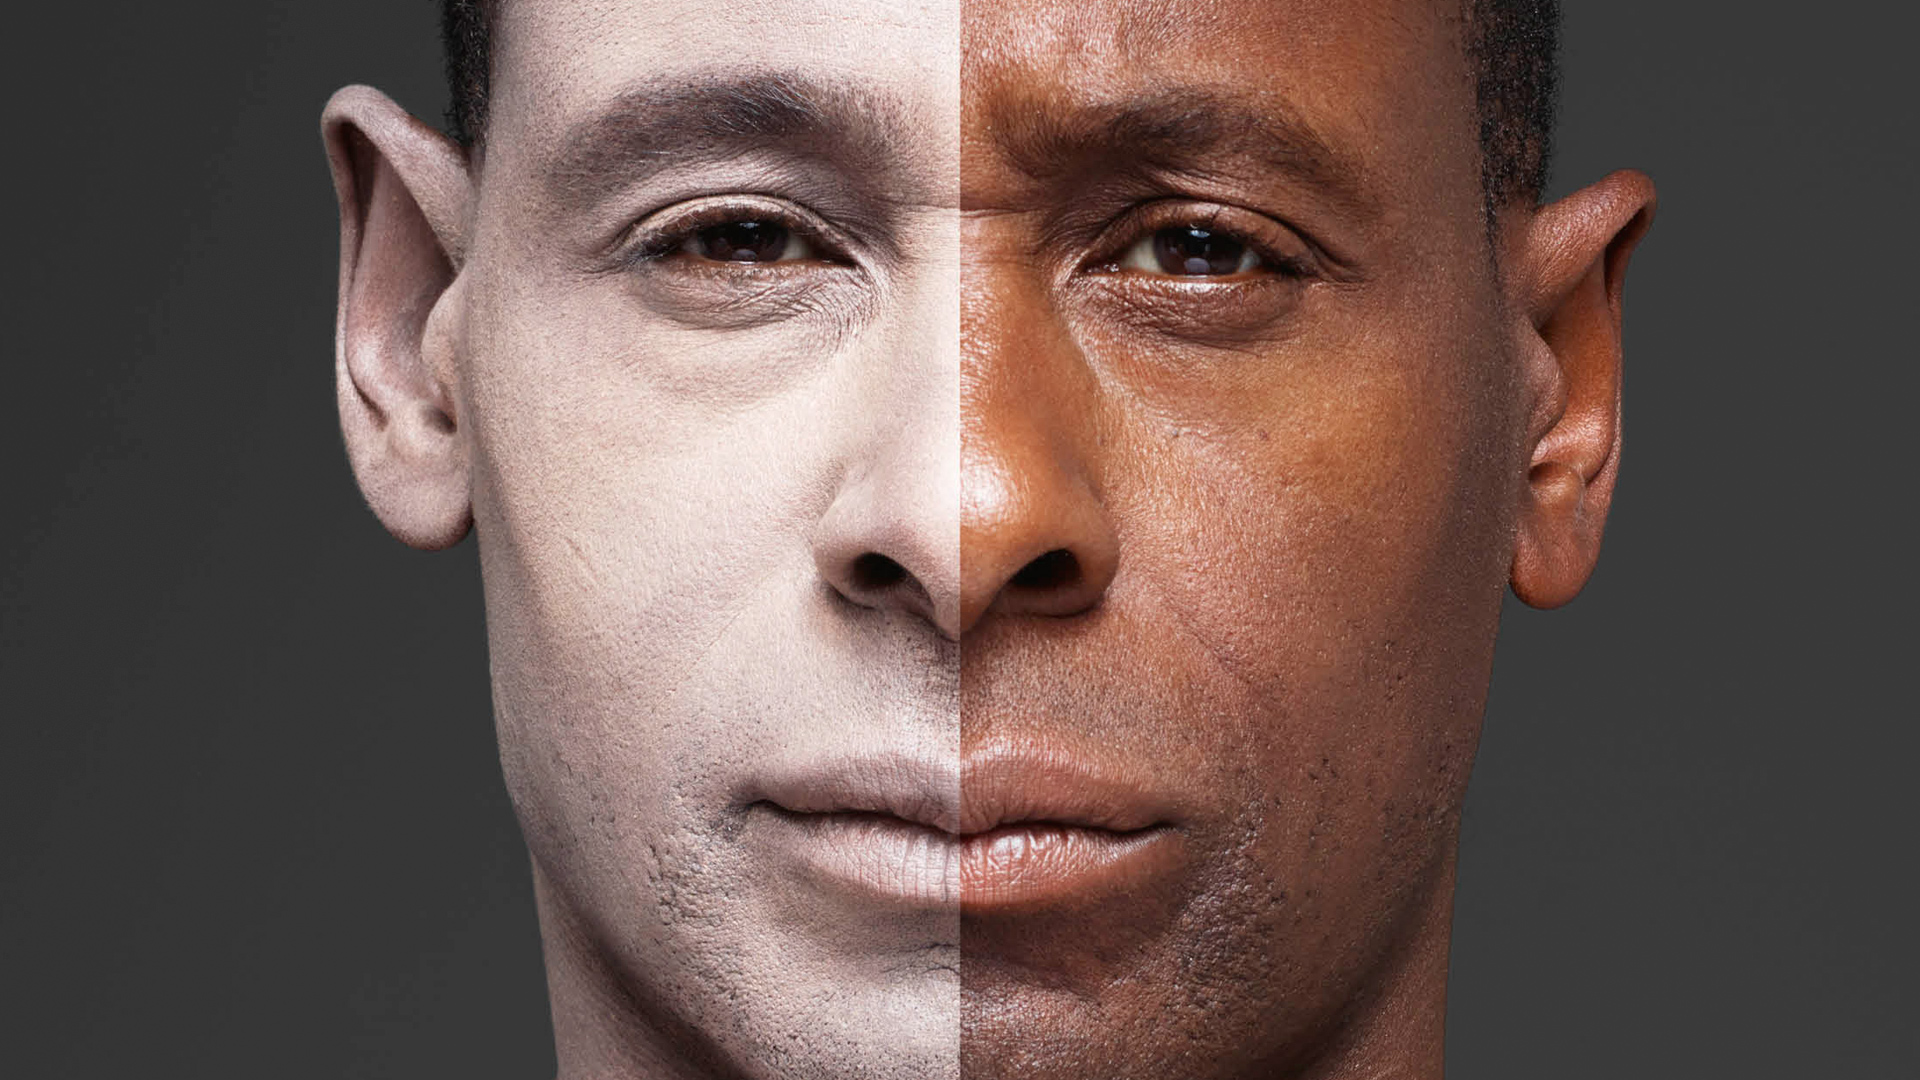 Image result for black skin to white skin